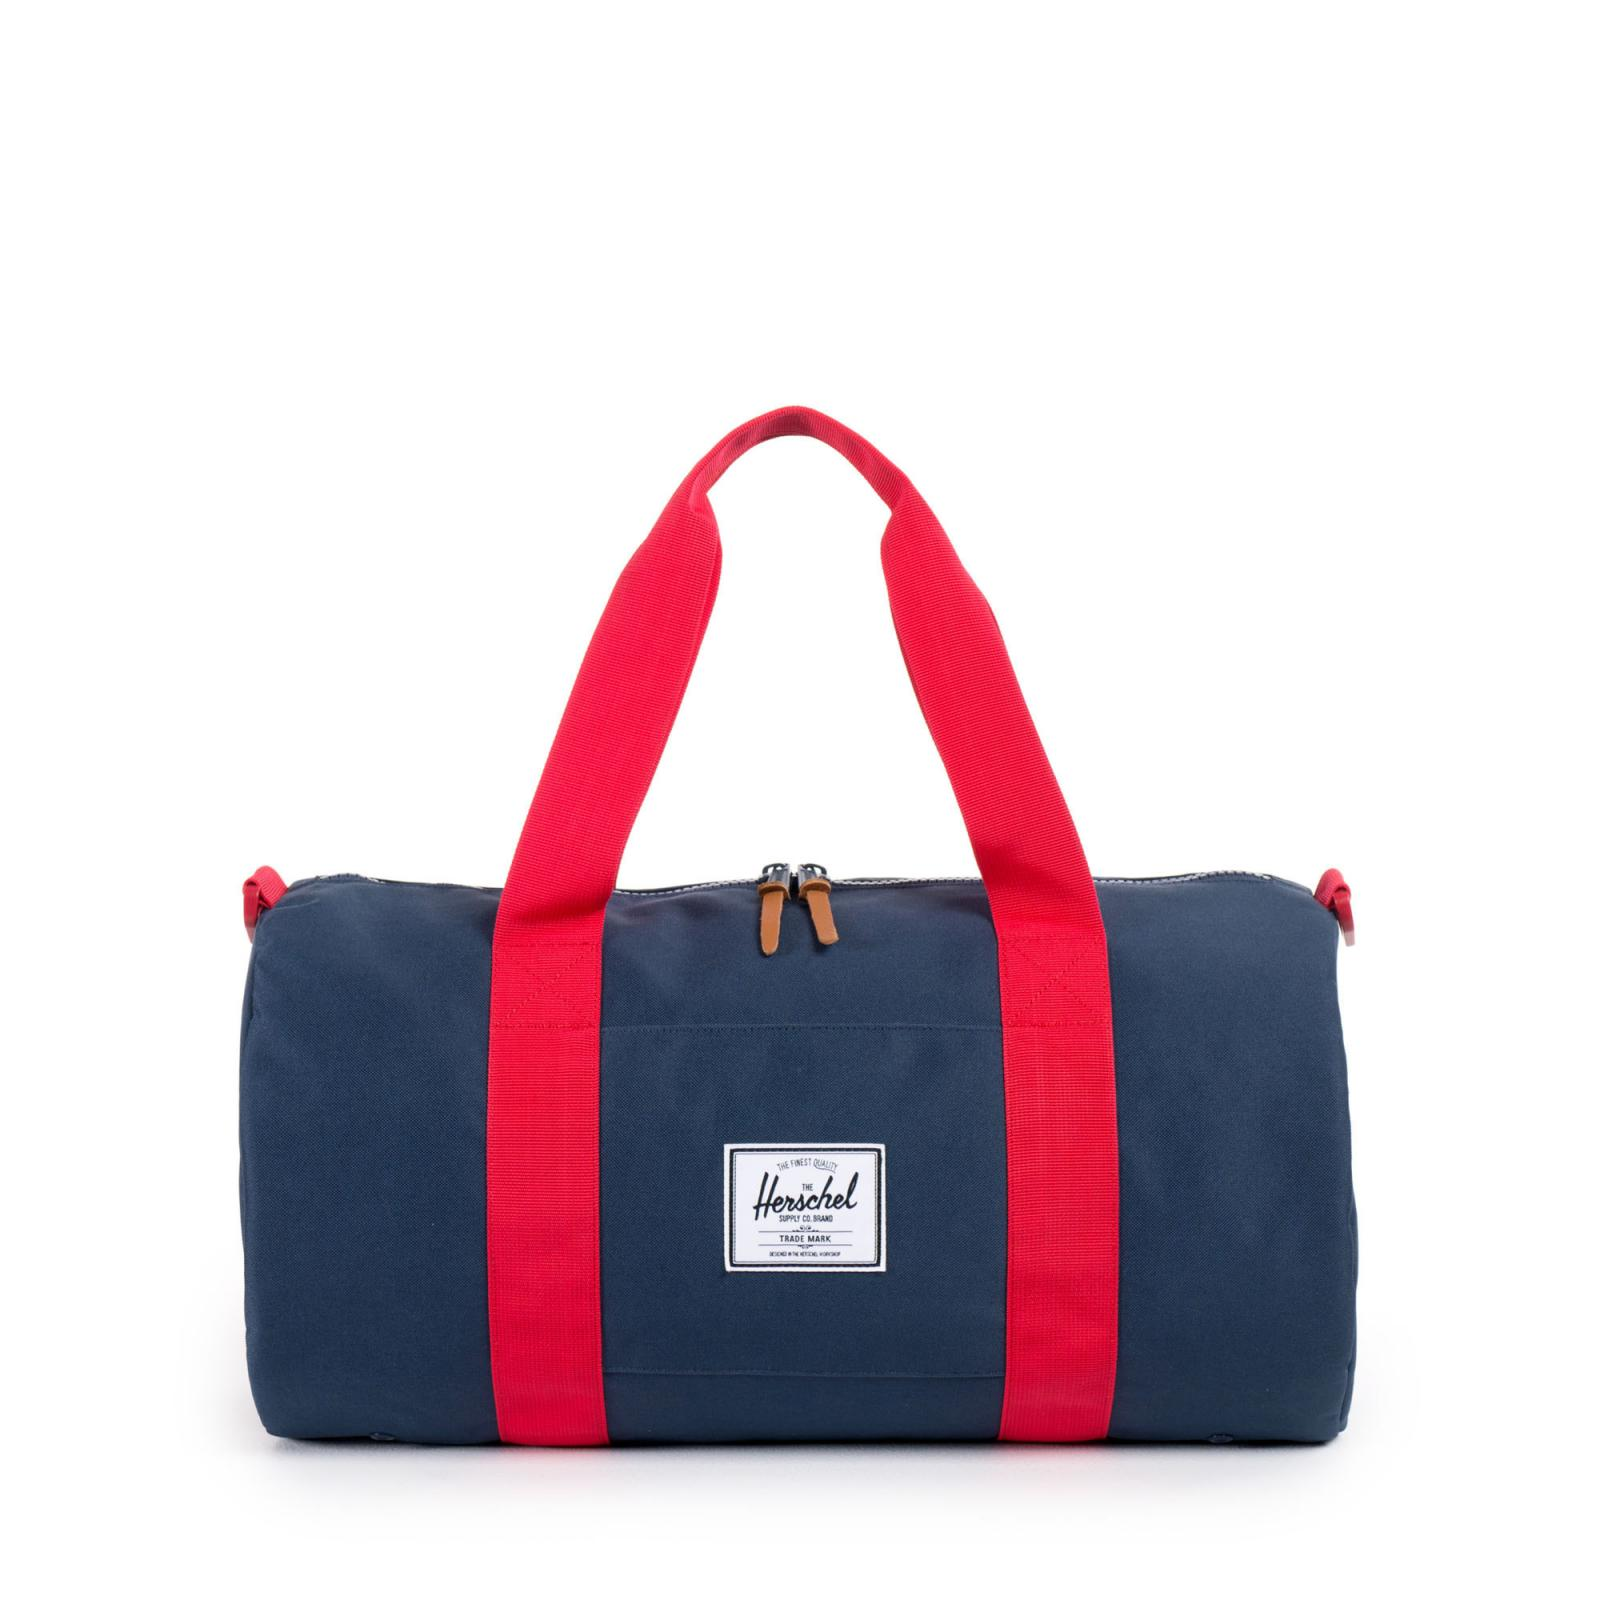 SUTTON DUFFLE MID-VOLUME